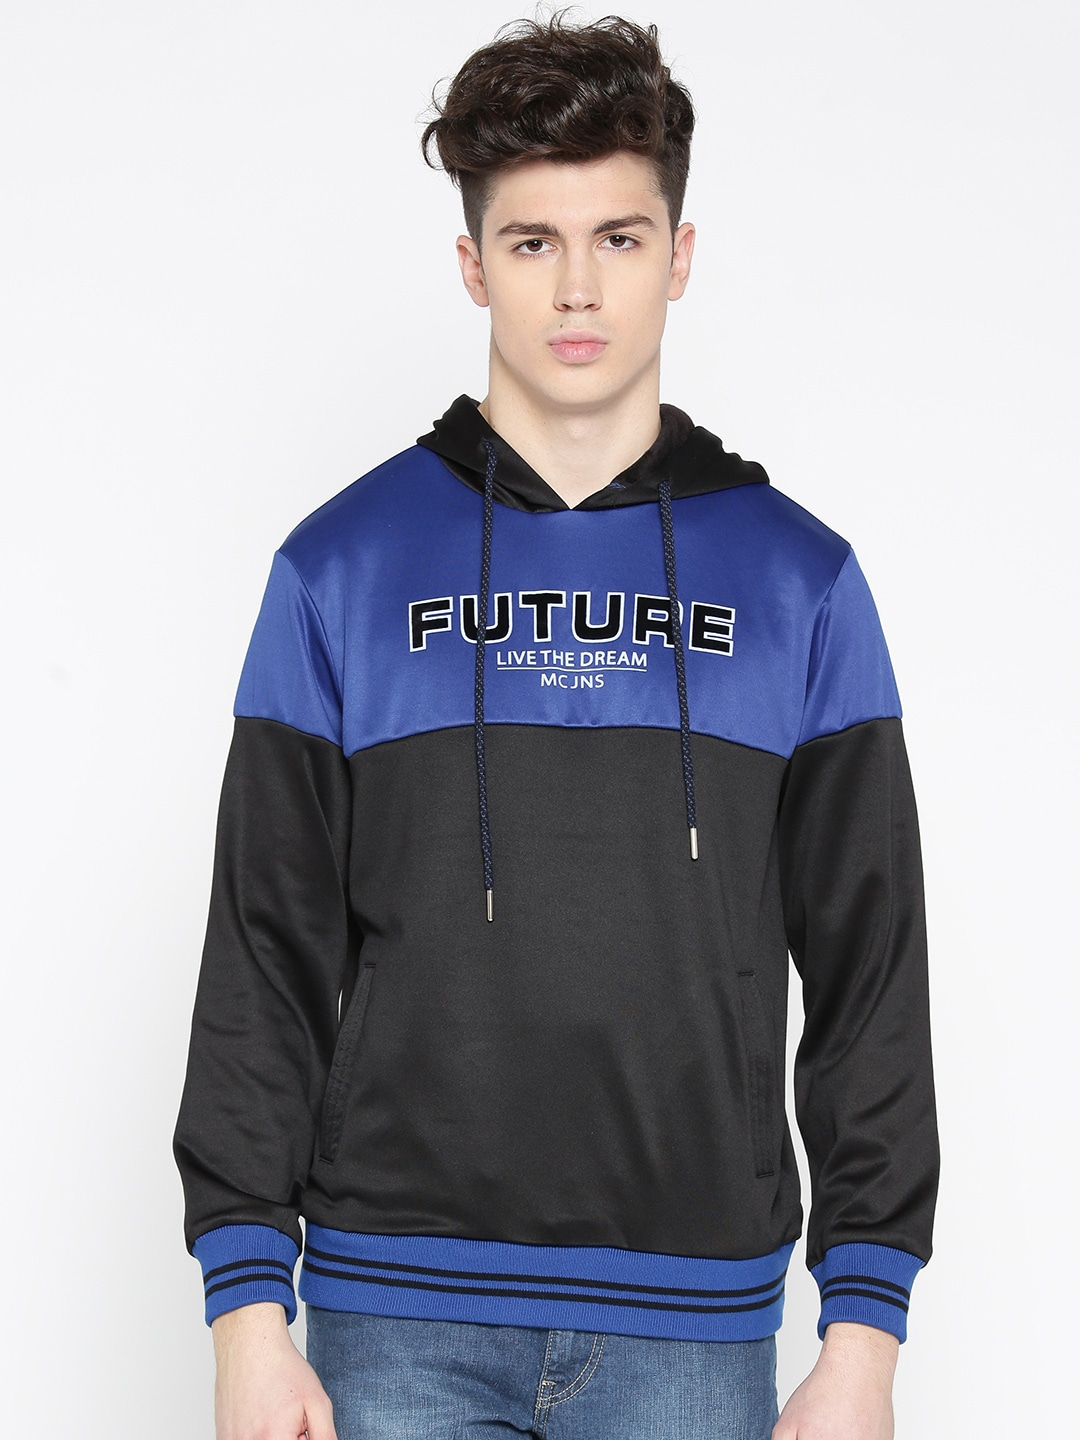 Monte Carlo Men Black & Blue Colourblocked Hooded Sweatshirt image